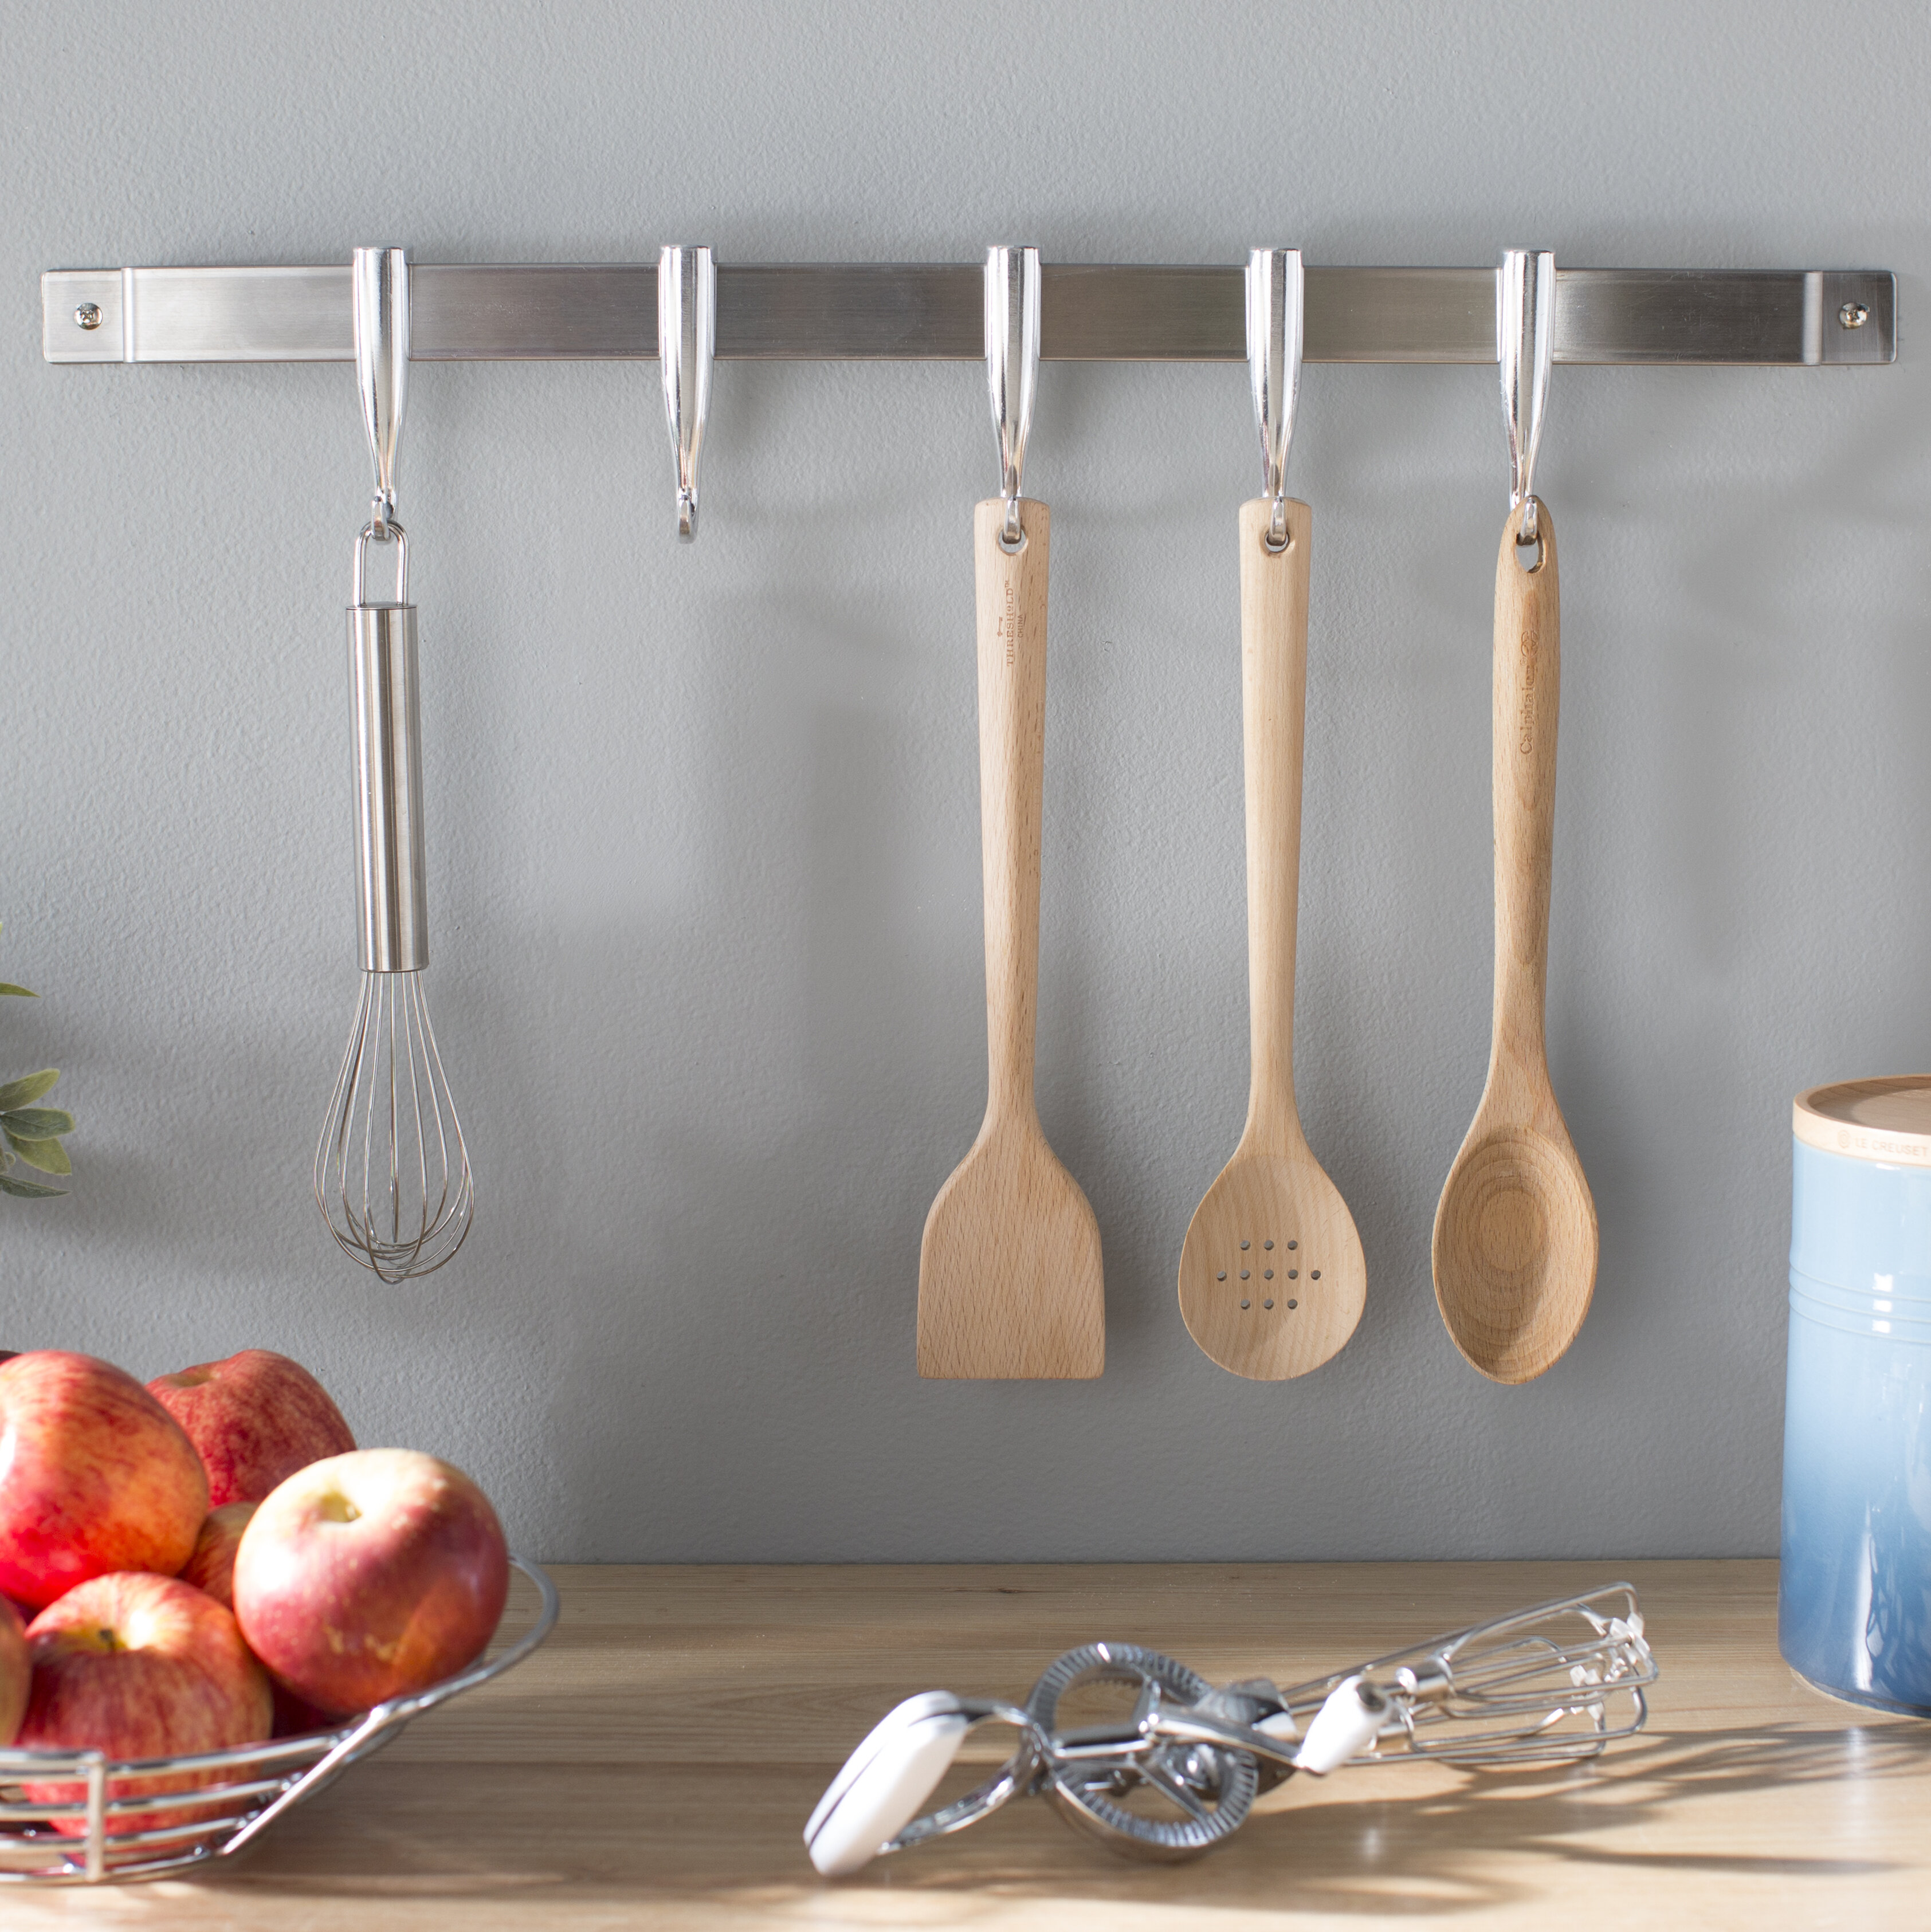 Concept Housewares Stainless Steel Wall Mounted Pot Rack Reviews